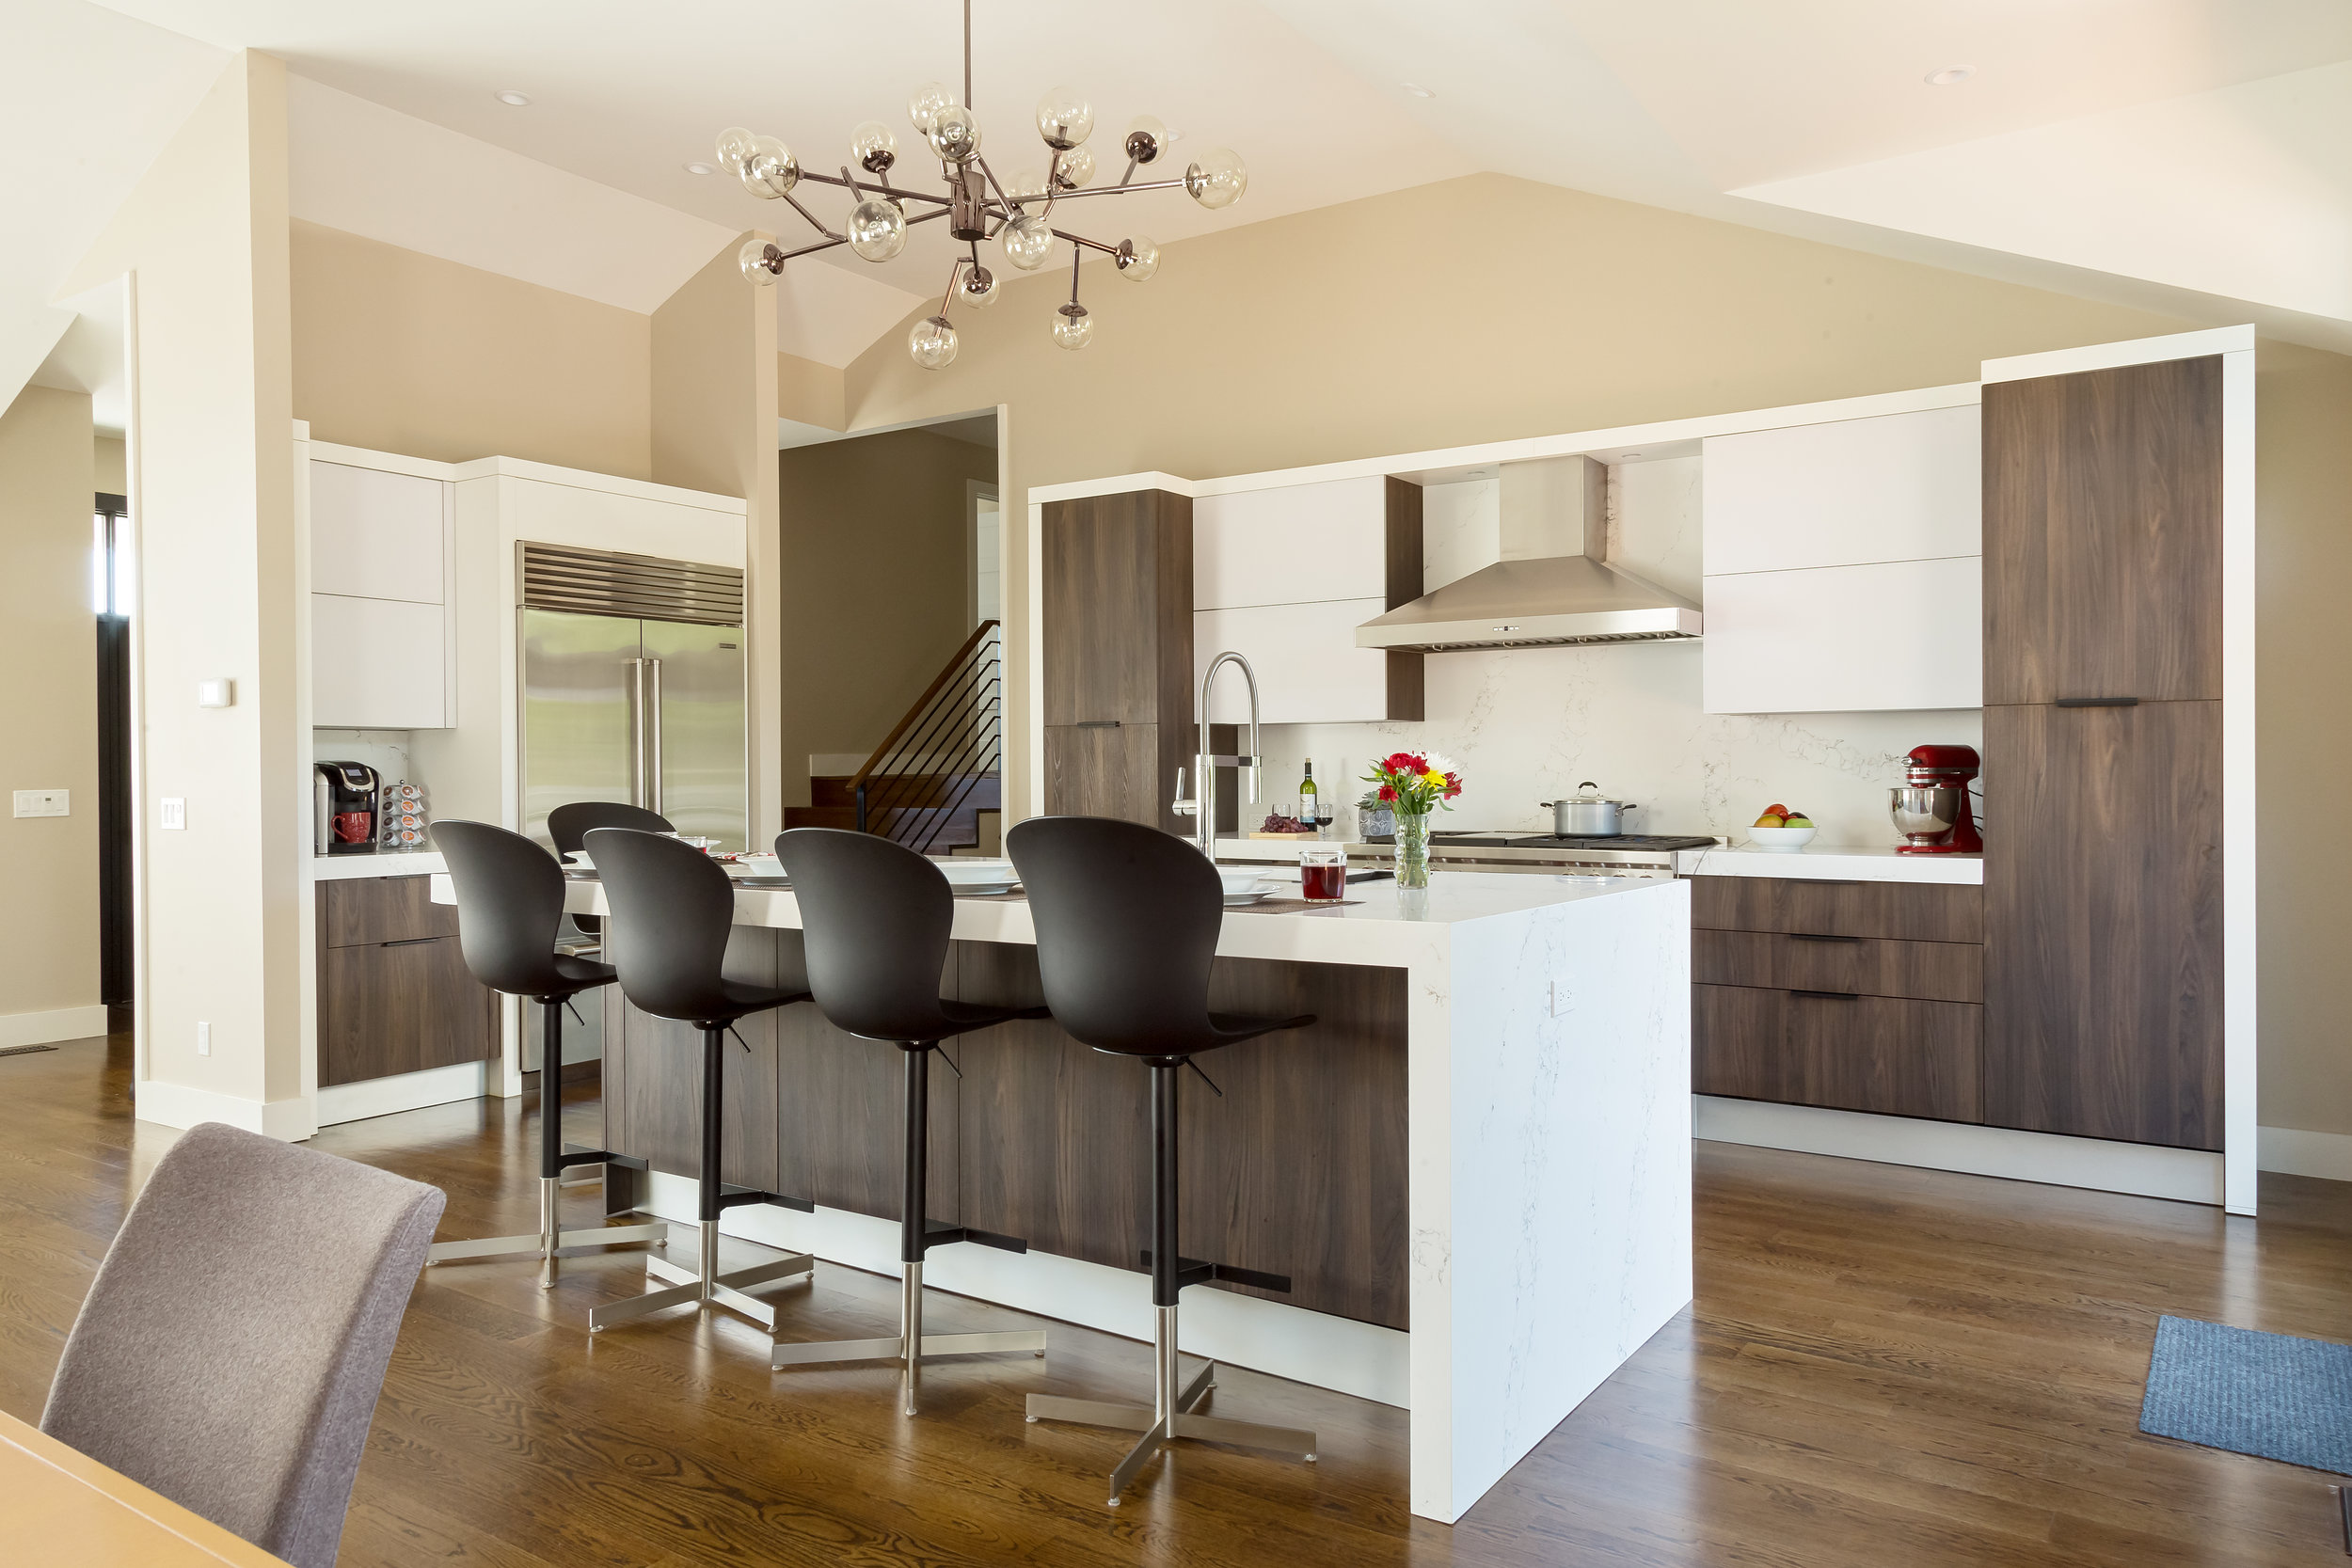 Contemporary style kitchen with blue kitchen island